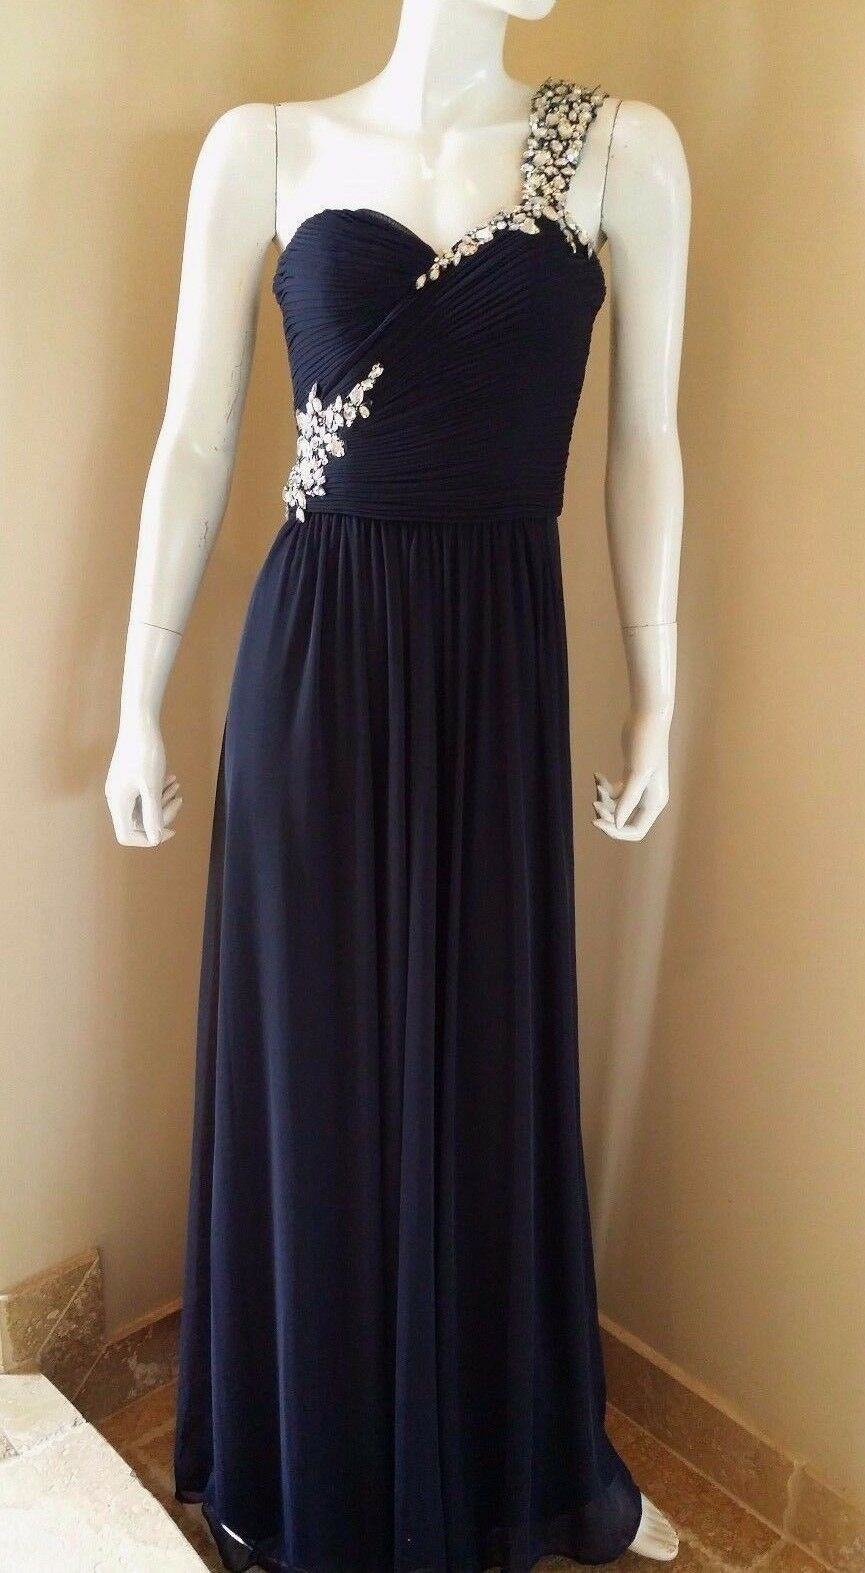 New XSCAPE EMBELLISHED ONE-SHOULDER JERSEY  blueE GOWN Sz 2 New